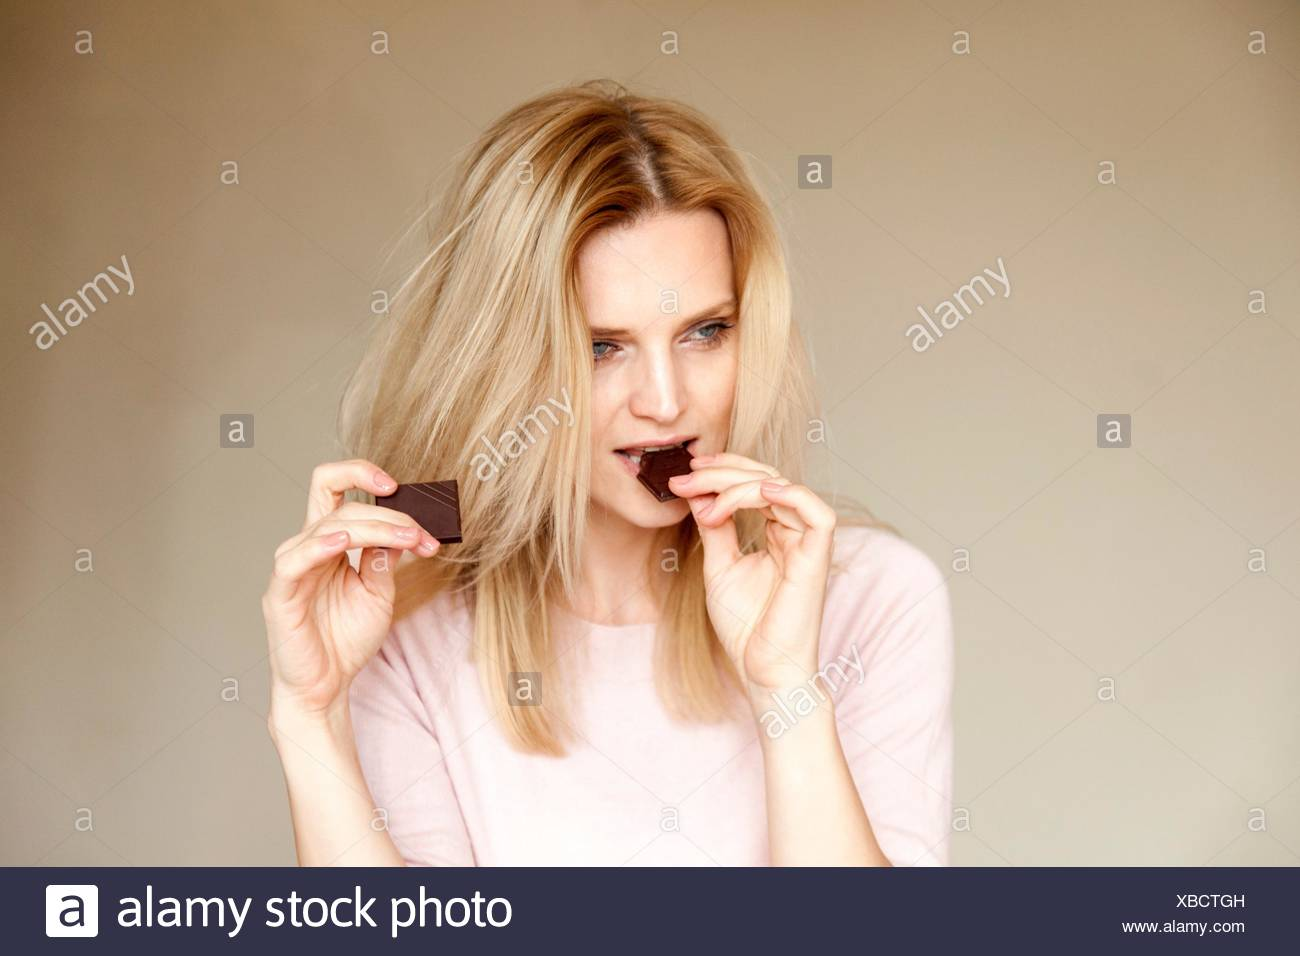 Portrait de belle femme avec de longs cheveux blonds de manger une barre de chocolat Photo Stock